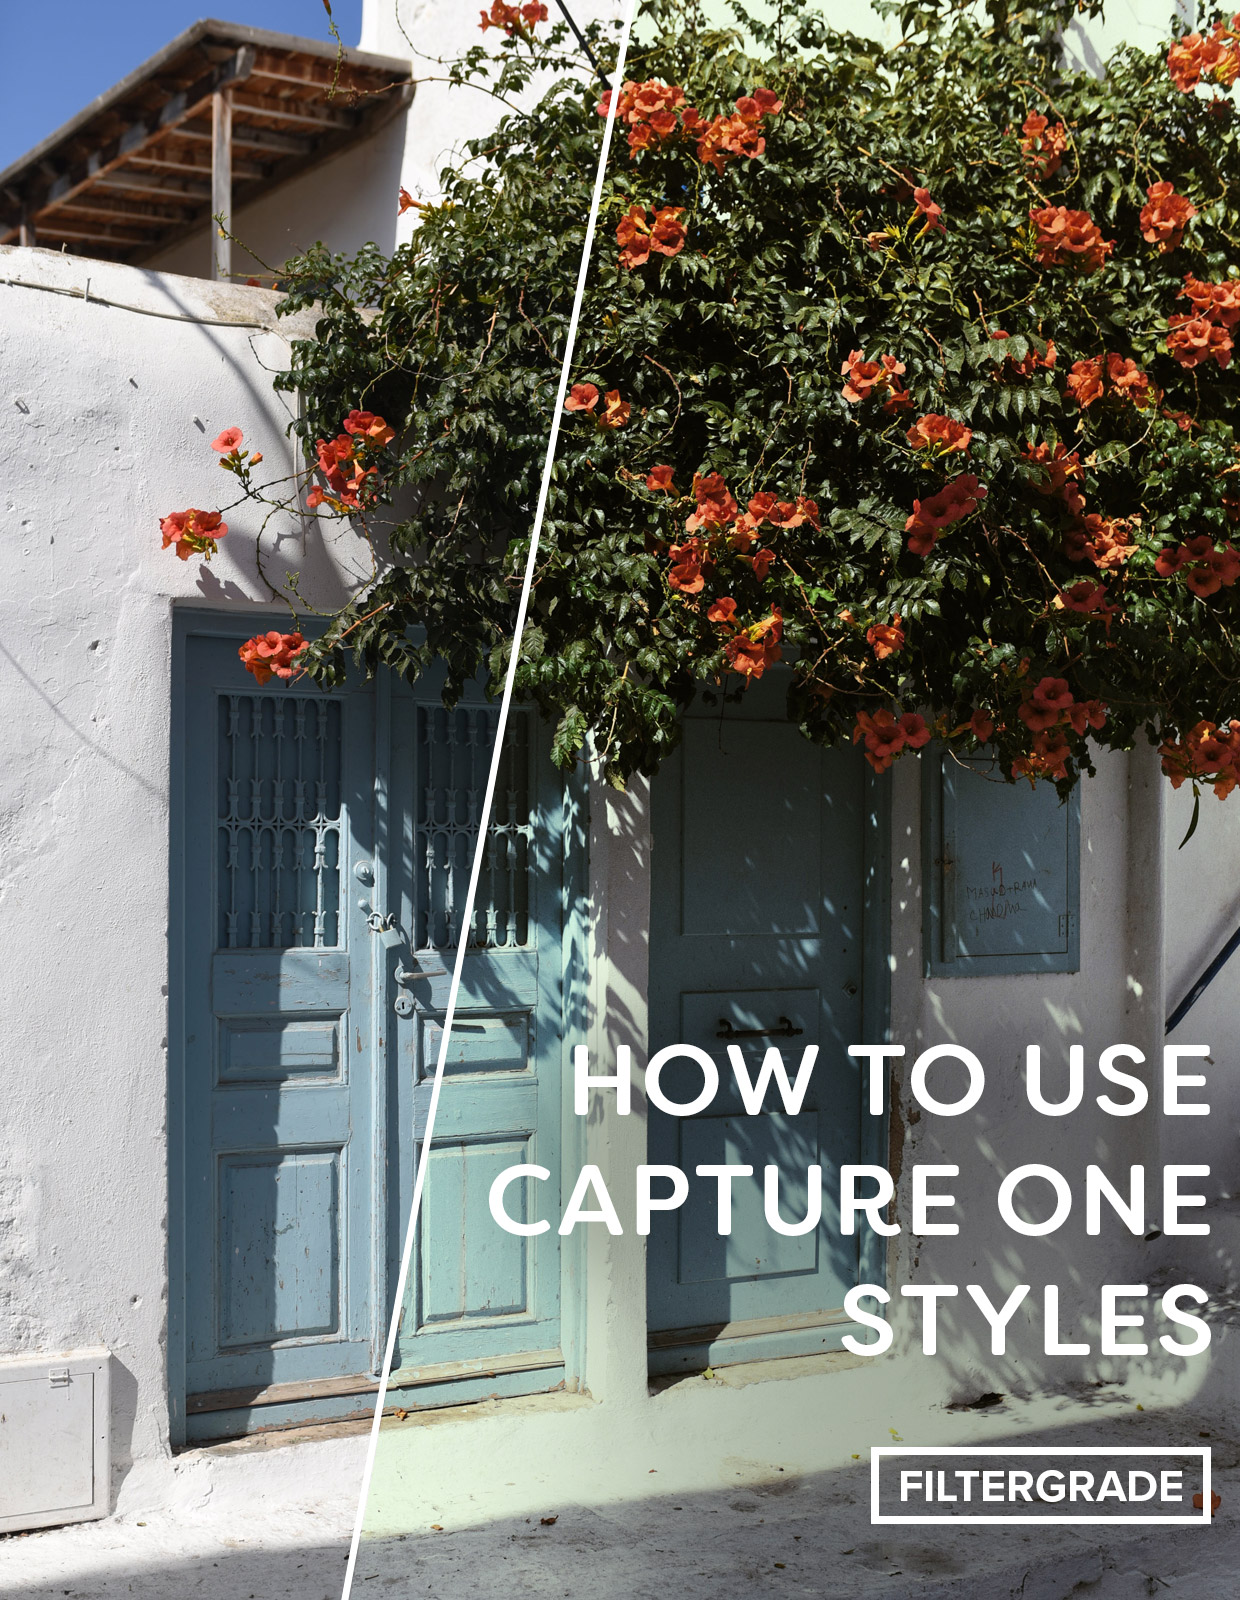 Helpful tips and tricks on how to use Capture One Styles and work more efficiently in Capture One Pro 10.